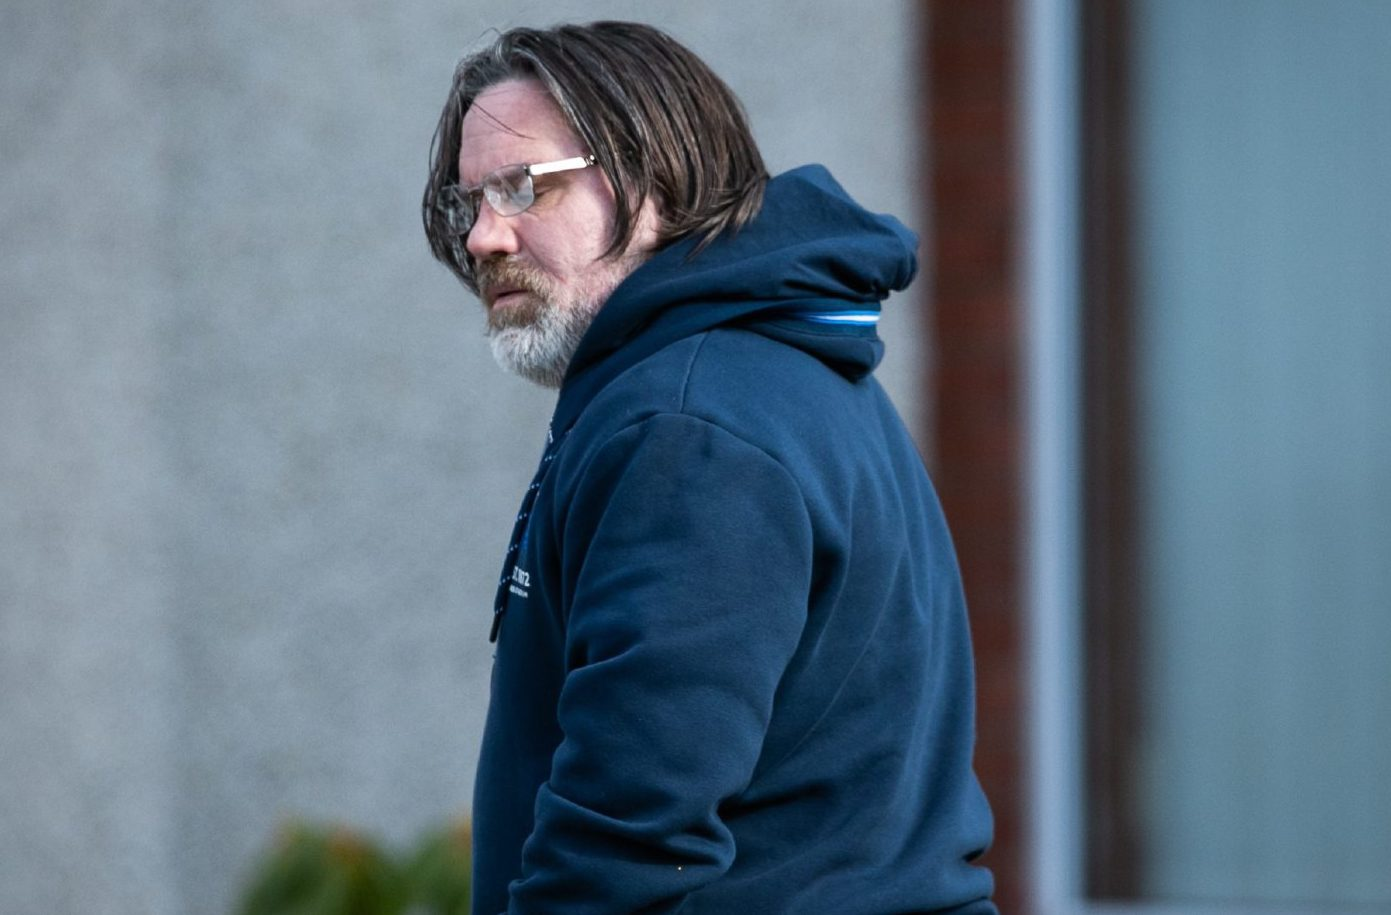 Iain Packer has nothing to say outside his home last week